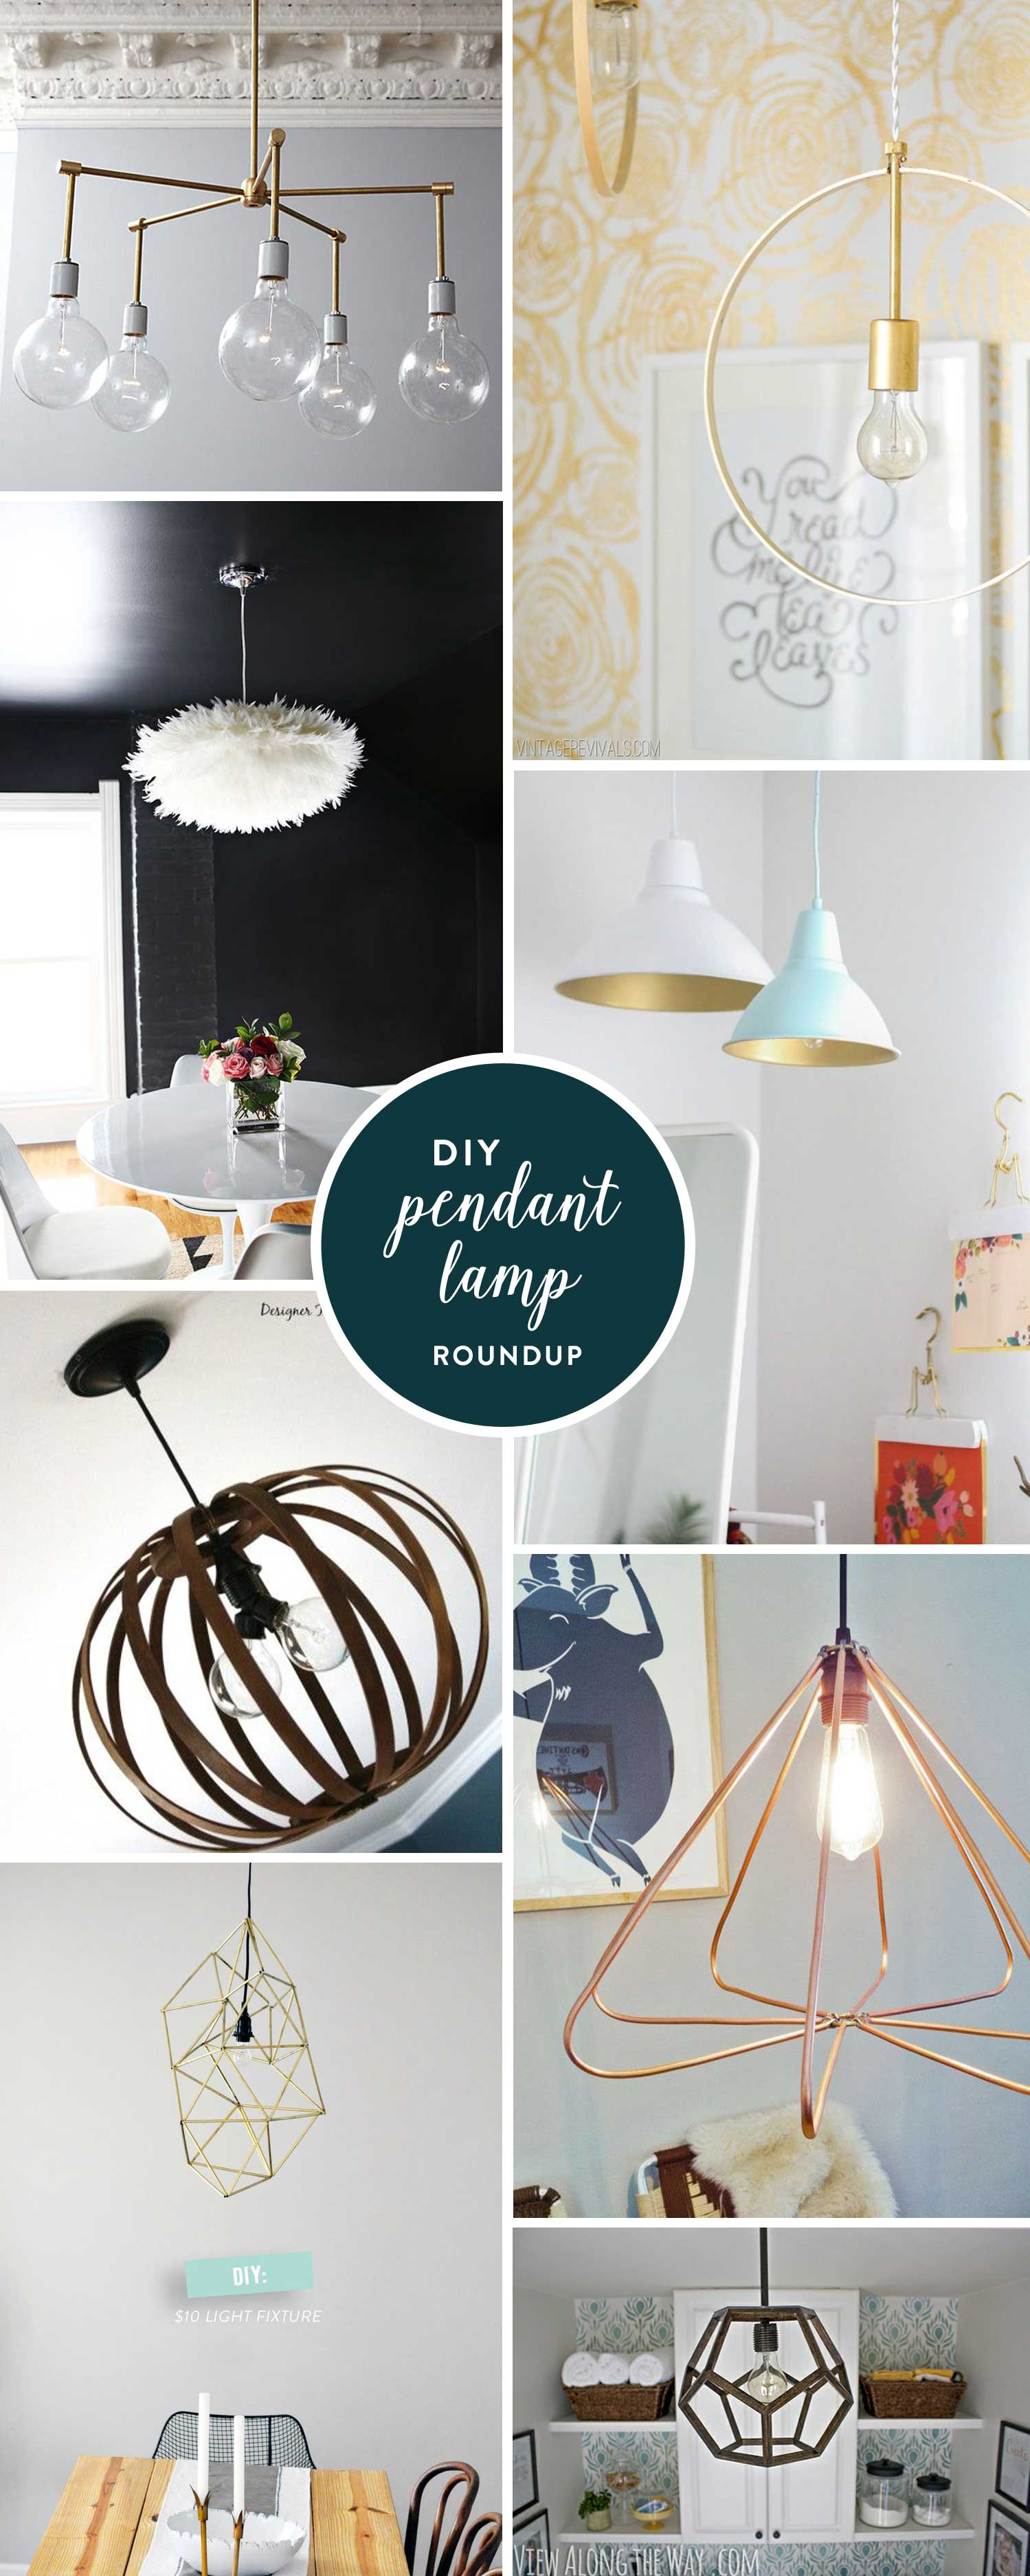 colorwhirl | diy pendant lamp inspiration